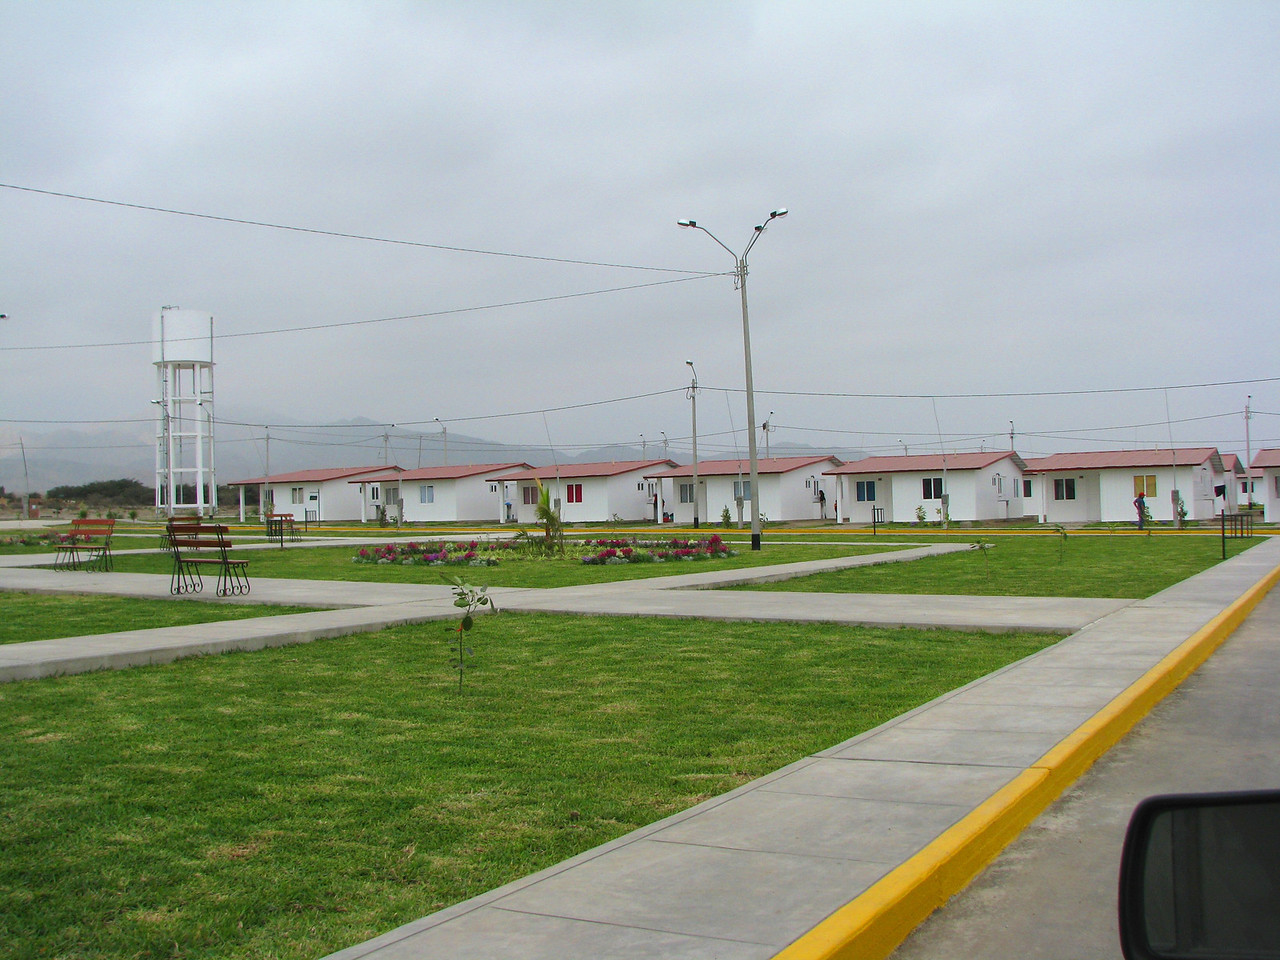 The community of Simon Bolivar, with houses donated by the gobernment of Venezuela.  Everything is fine and dandy, except, the housed are made of.... vinyl.  The word Tupperware comes to mind.<br /> La comunidad de Simon Bolivar, con casas donadas por el bobierno de Venezuela.  Todo esta muy bonito, excepto que las casas estan hechas de... vinil.  No quiero imaginarme el calor que hara en el verano.